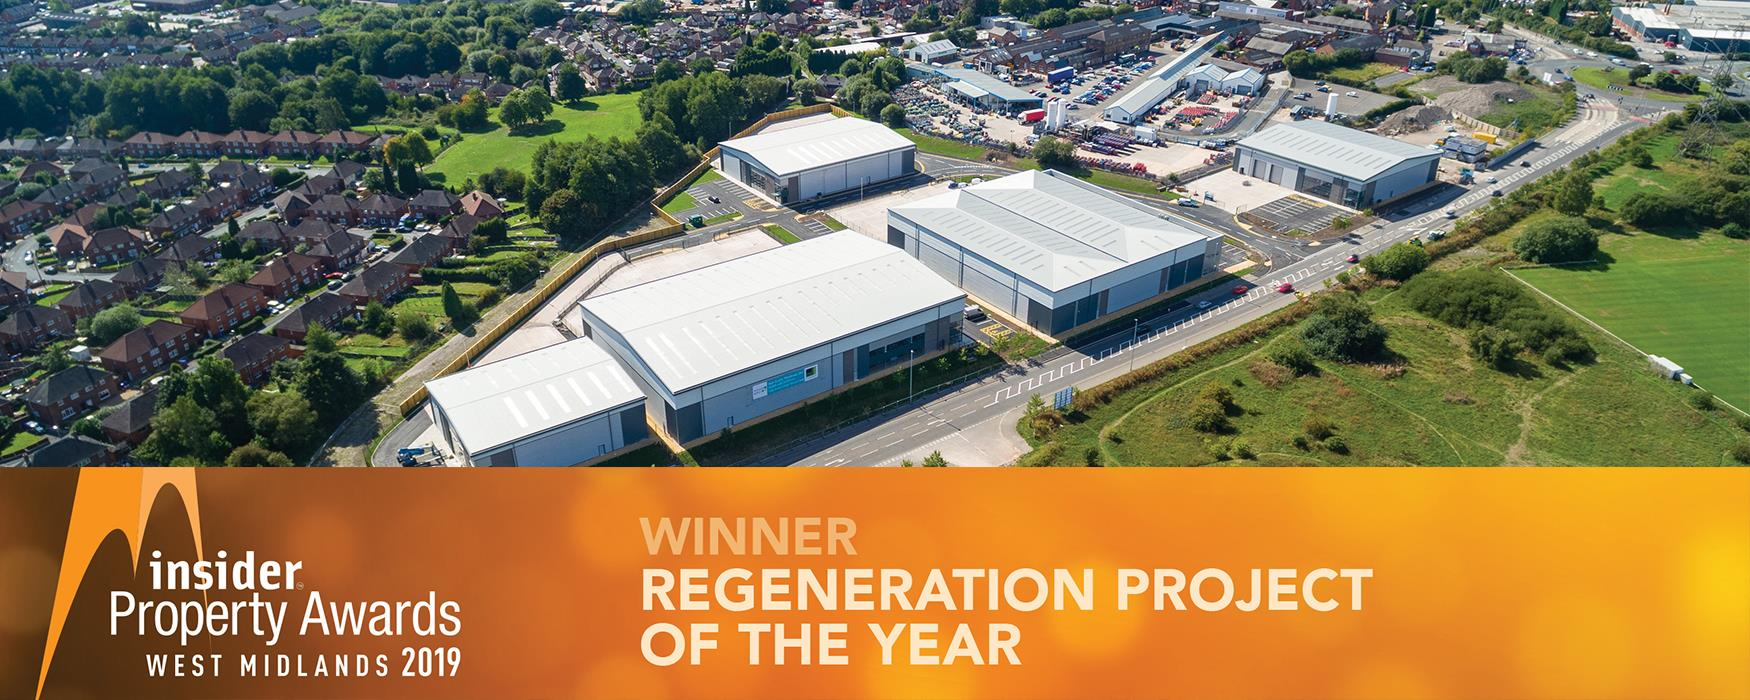 """Aerial View of Tunstall Arrow with text stating """"Tunstall Arrow, Stoke-on-Trent - Winner Regeneration Project of the Year. West Midlands Property Awards 2019."""""""